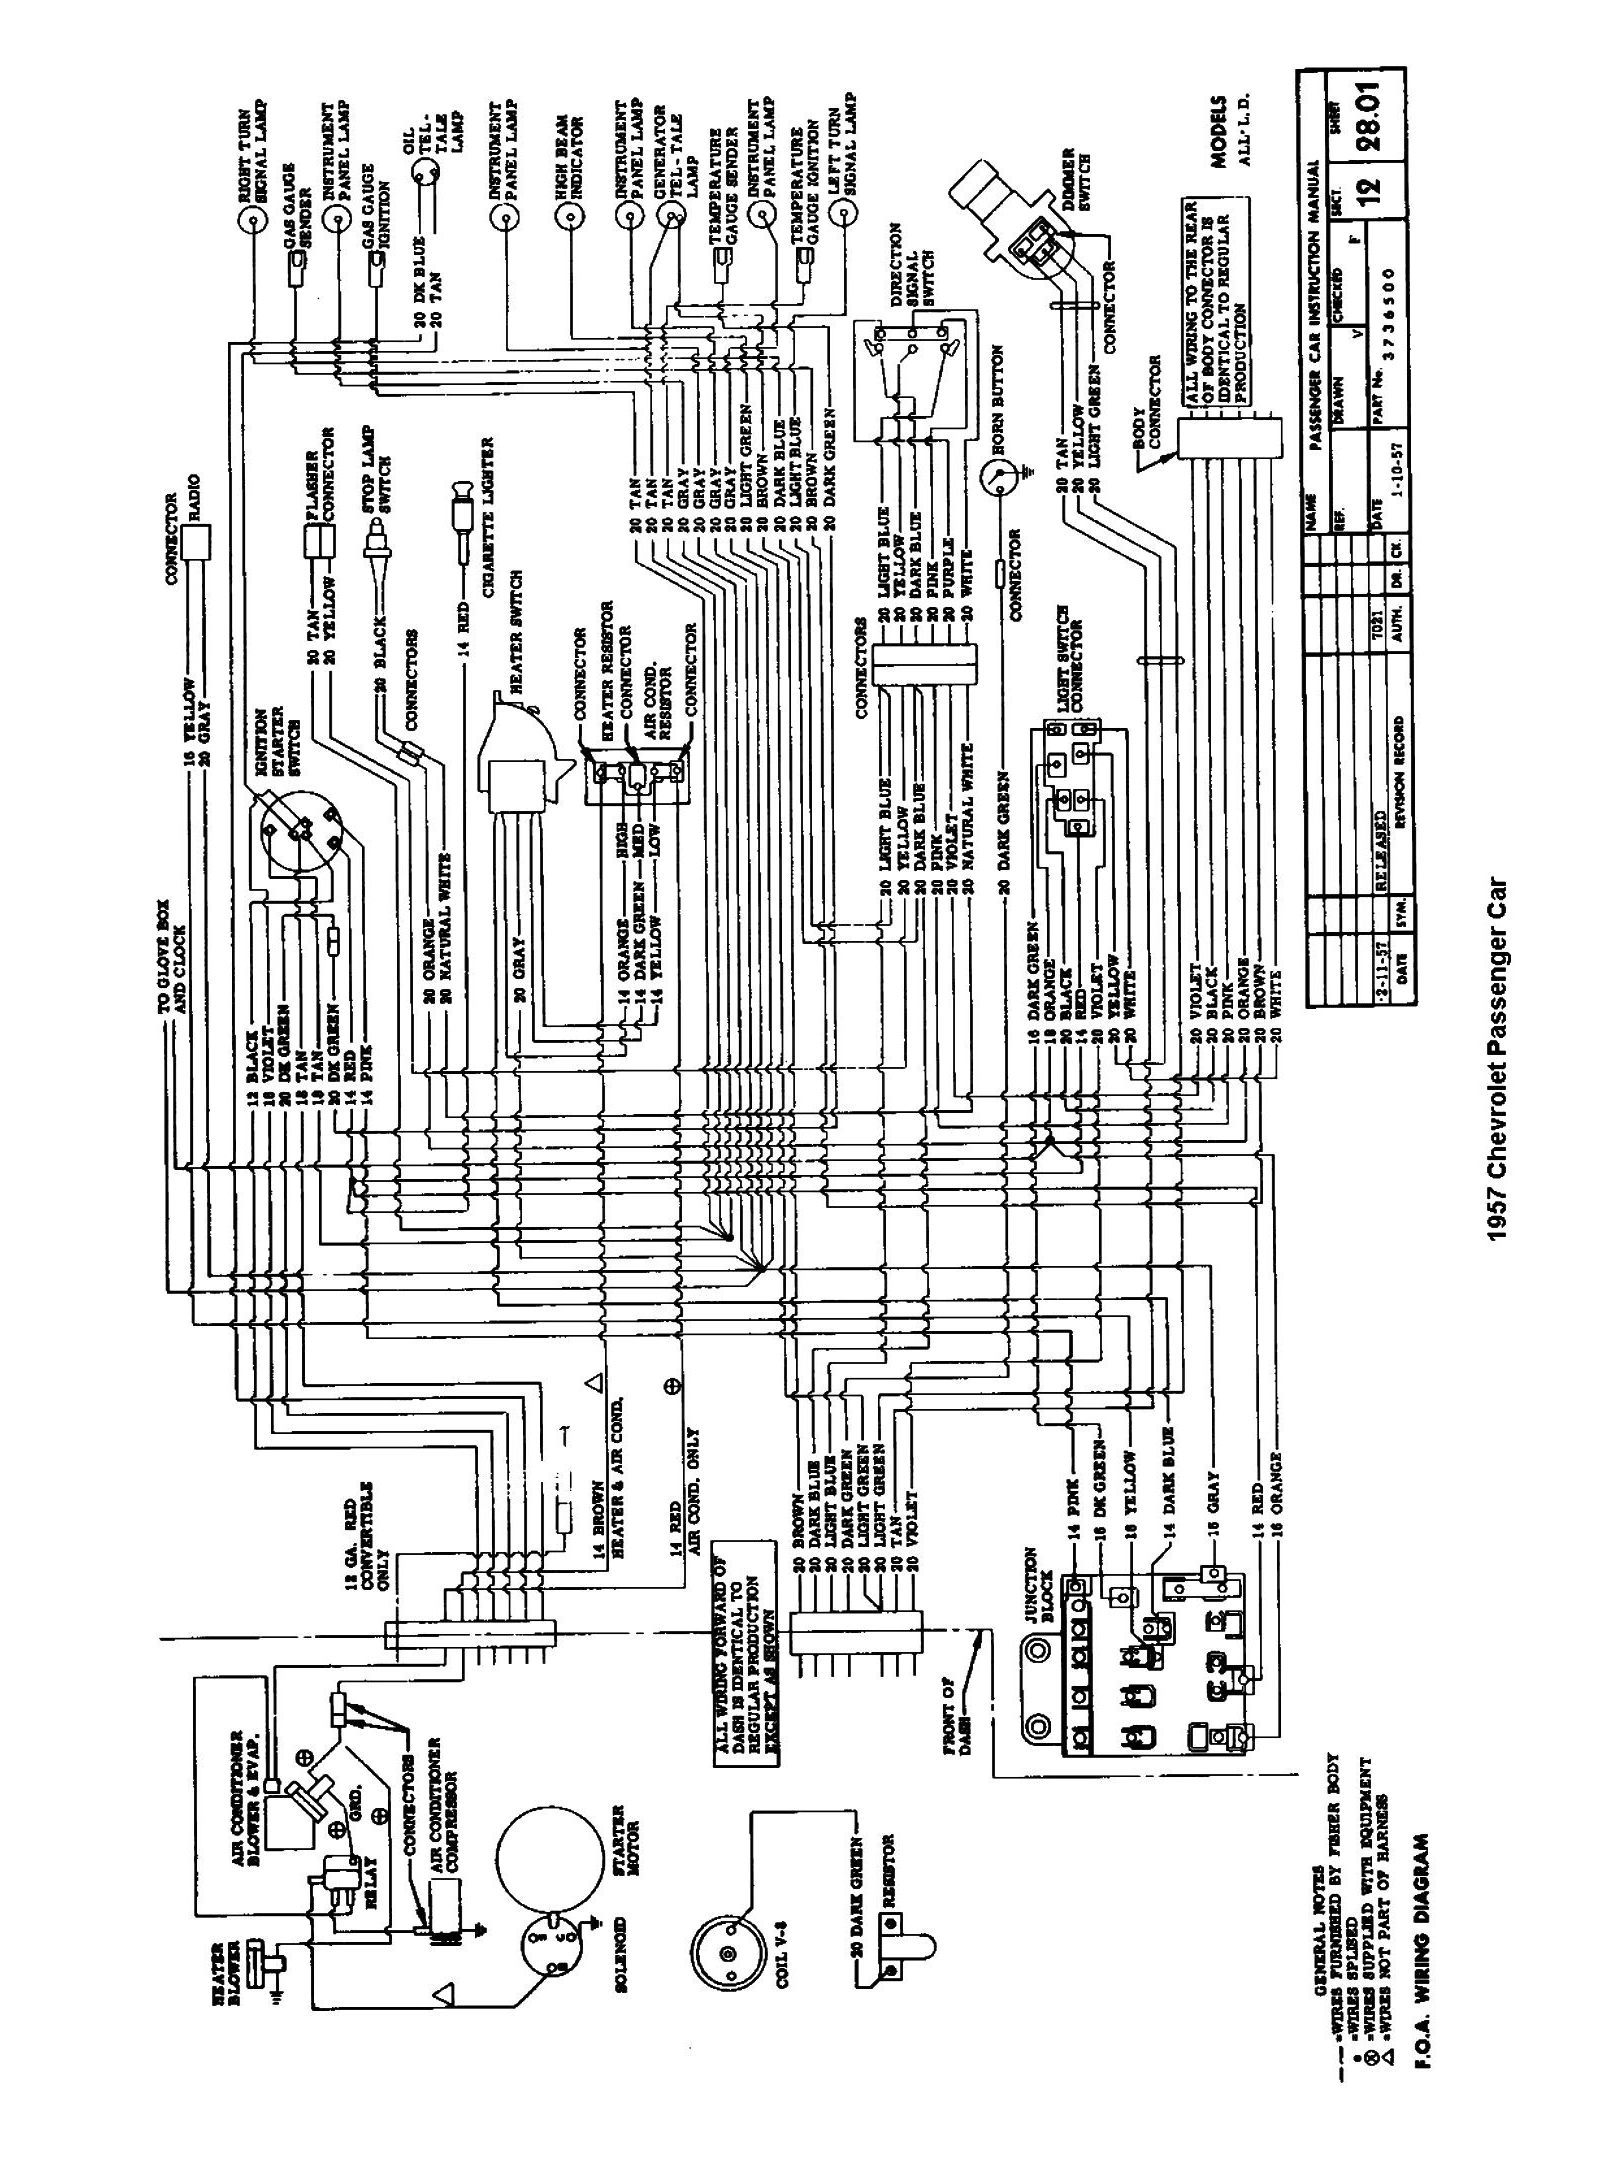 1957 Corvette Wiring Diagram Library Image 63 Vette Passenger Car 2 Chevy Diagrams